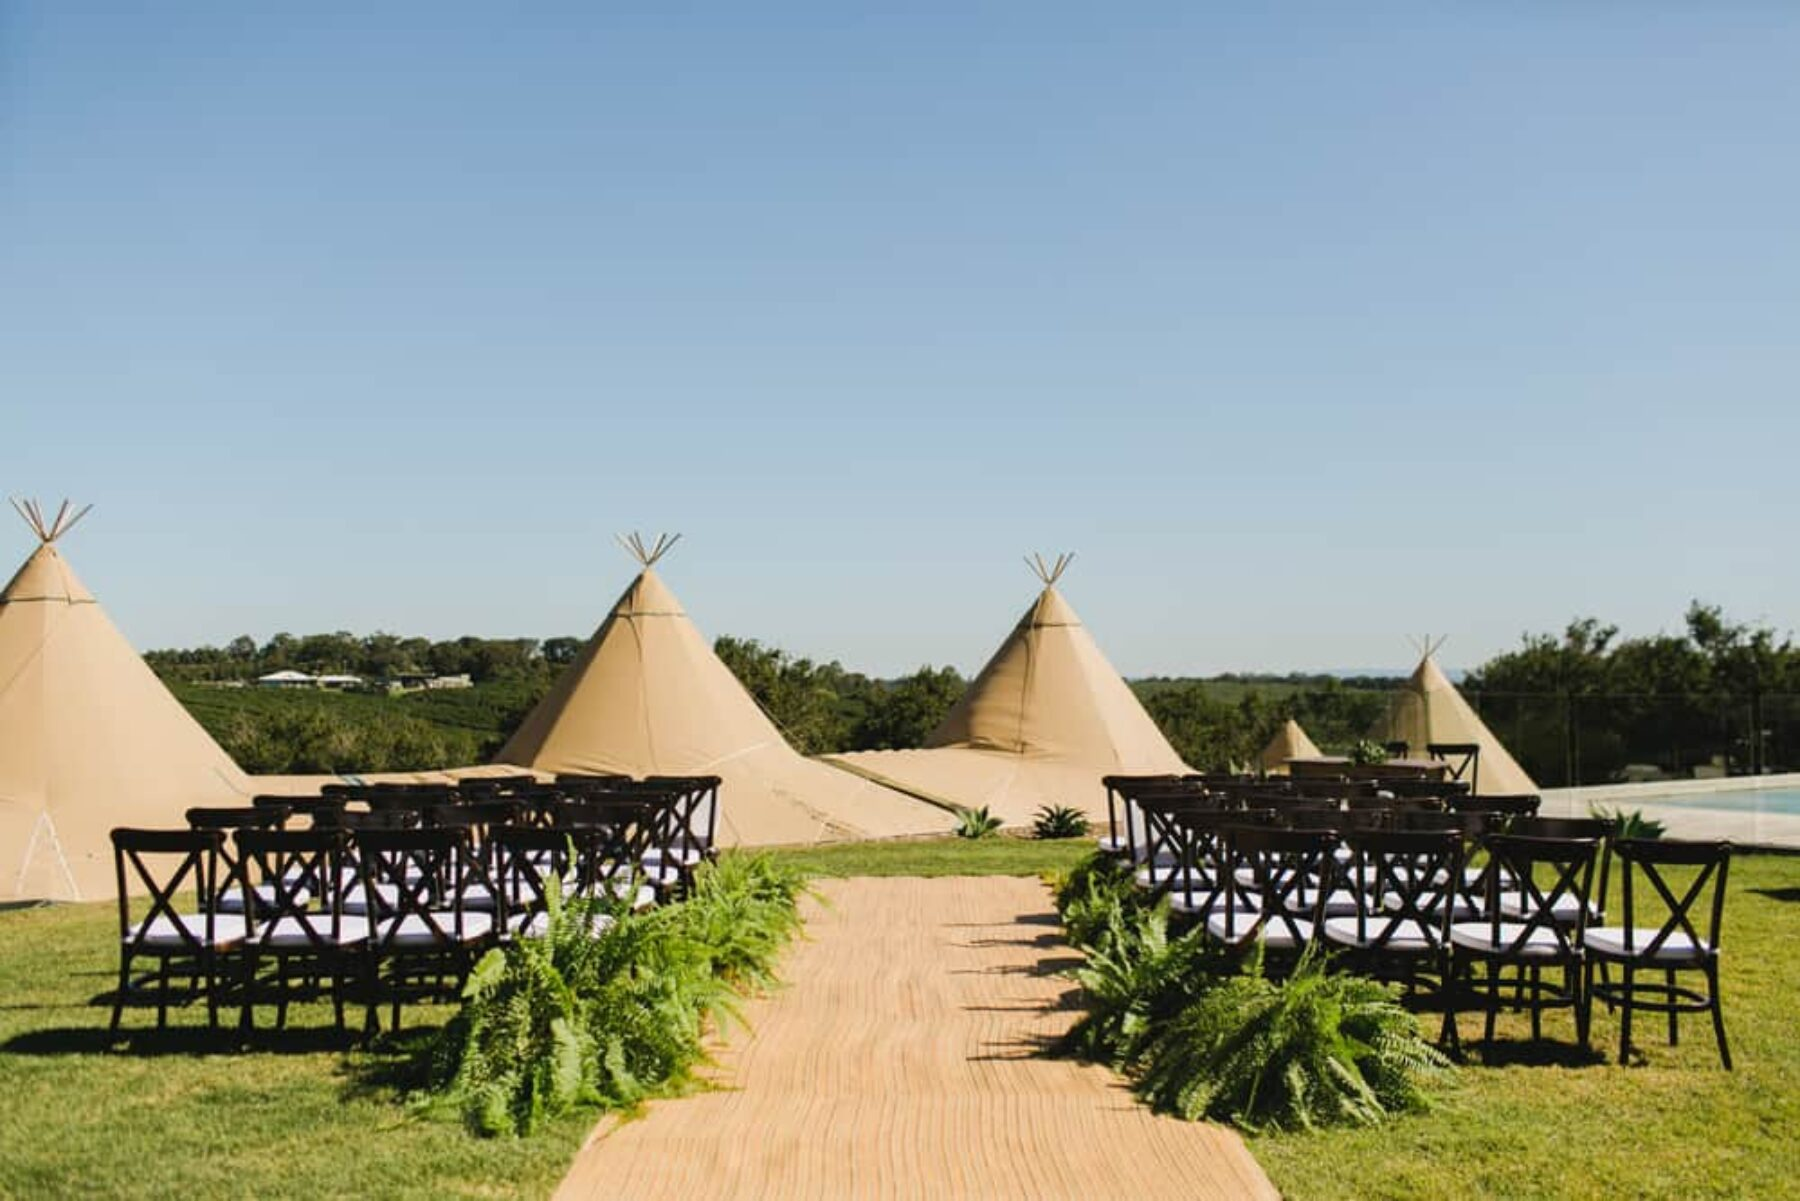 Byron Bay tipi wedding / Photography by John Benavente